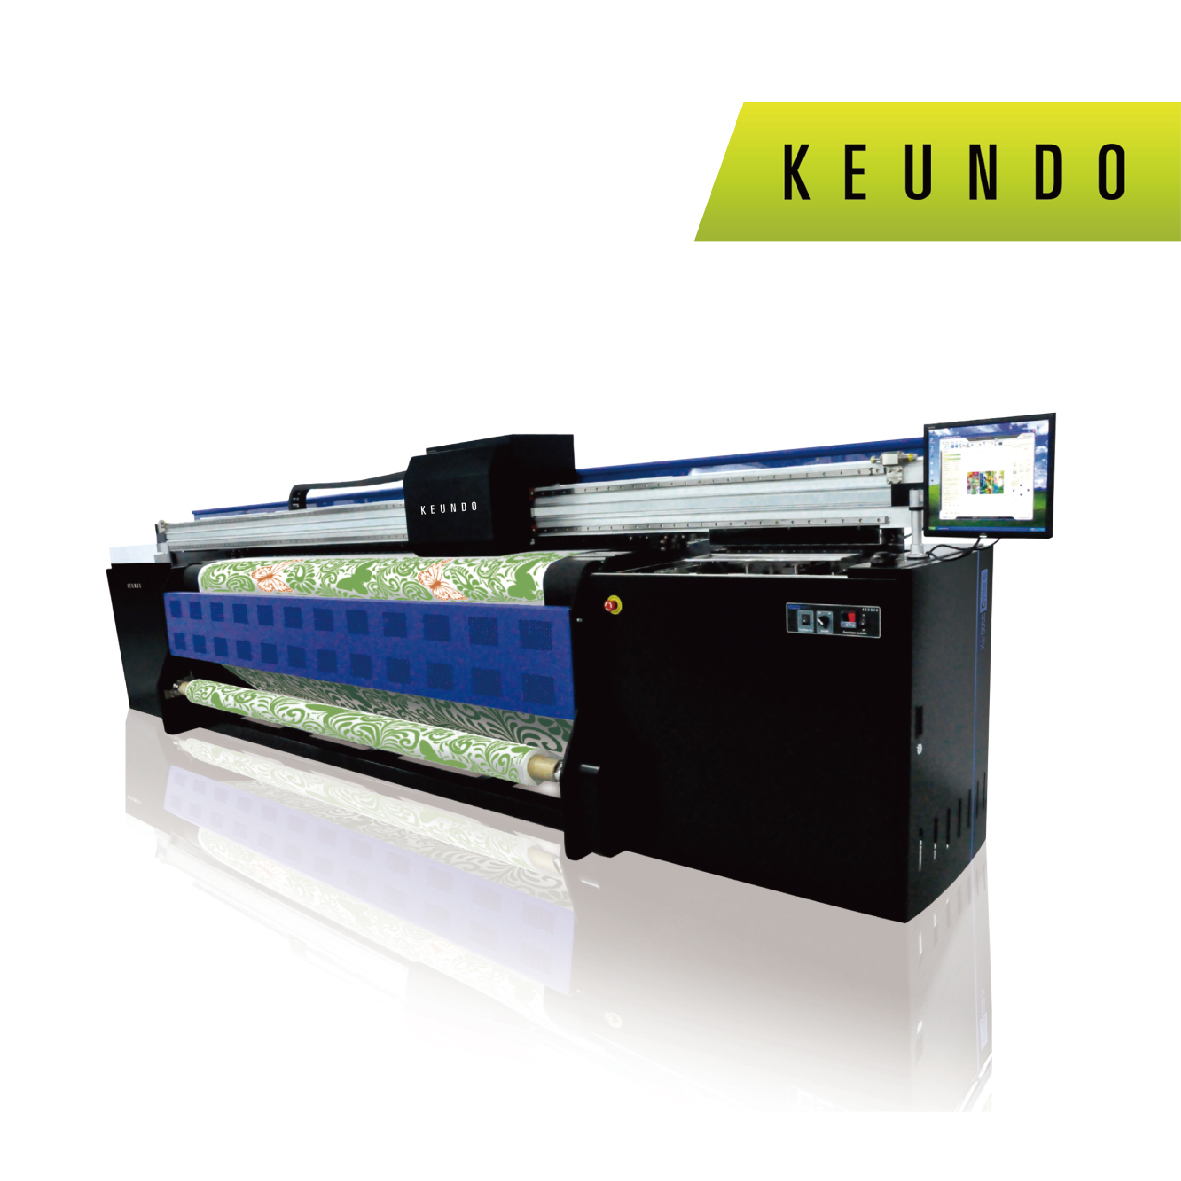 SUPRAQ 3200 -TX6 3.2m Grand Format Dye Sublimation System With Six SG-1024 Print Heads